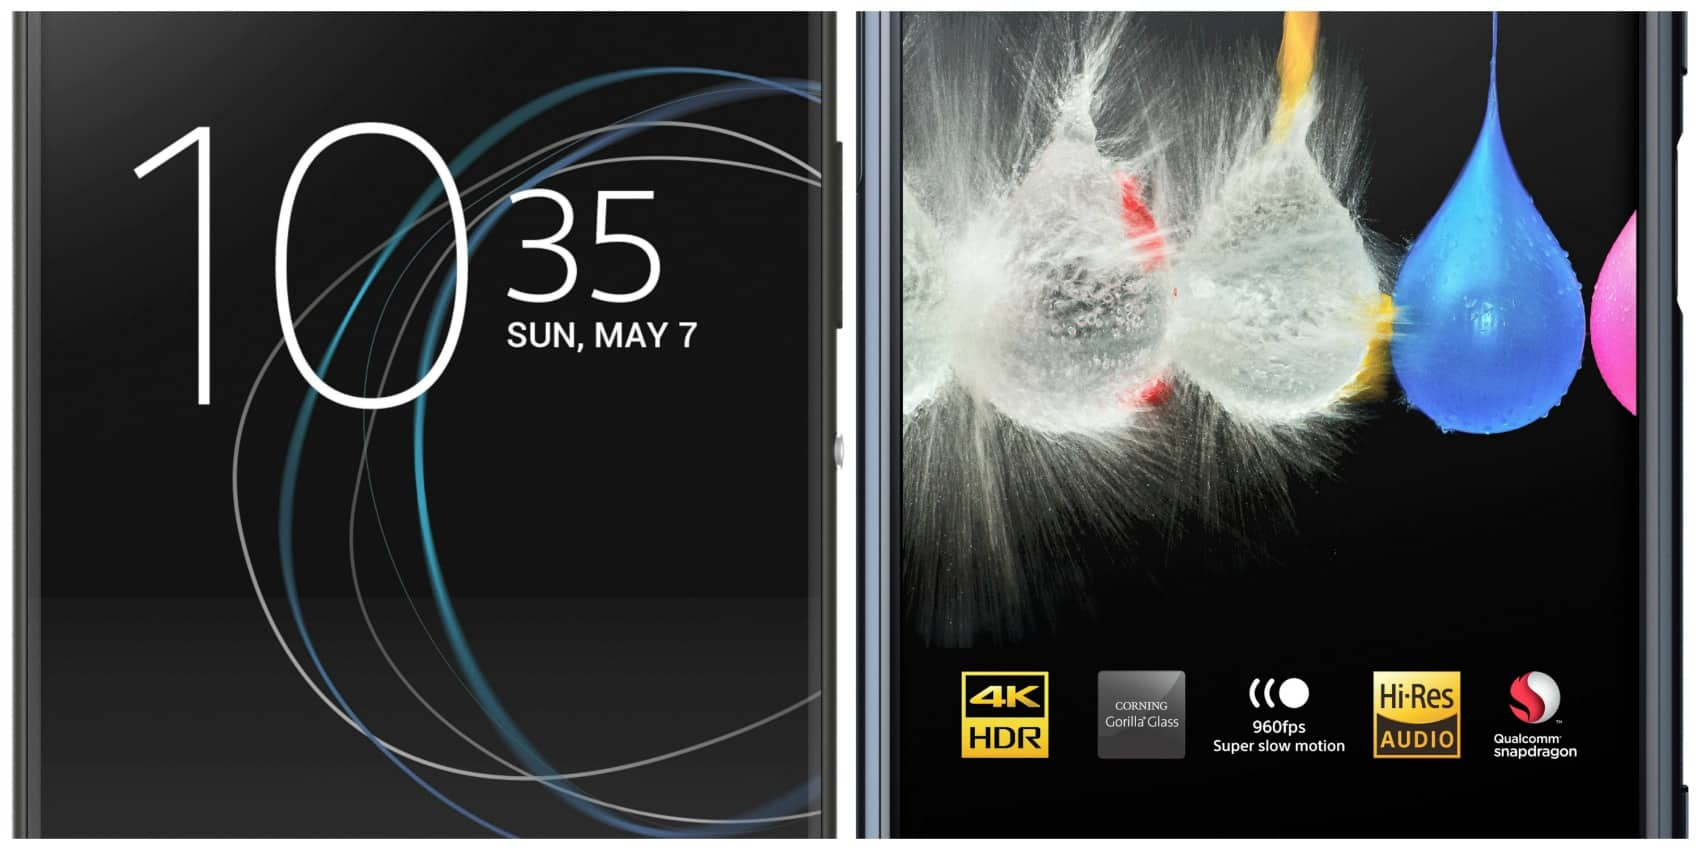 Sony Xperia Unlocked Mobile Phones From Bestbuy